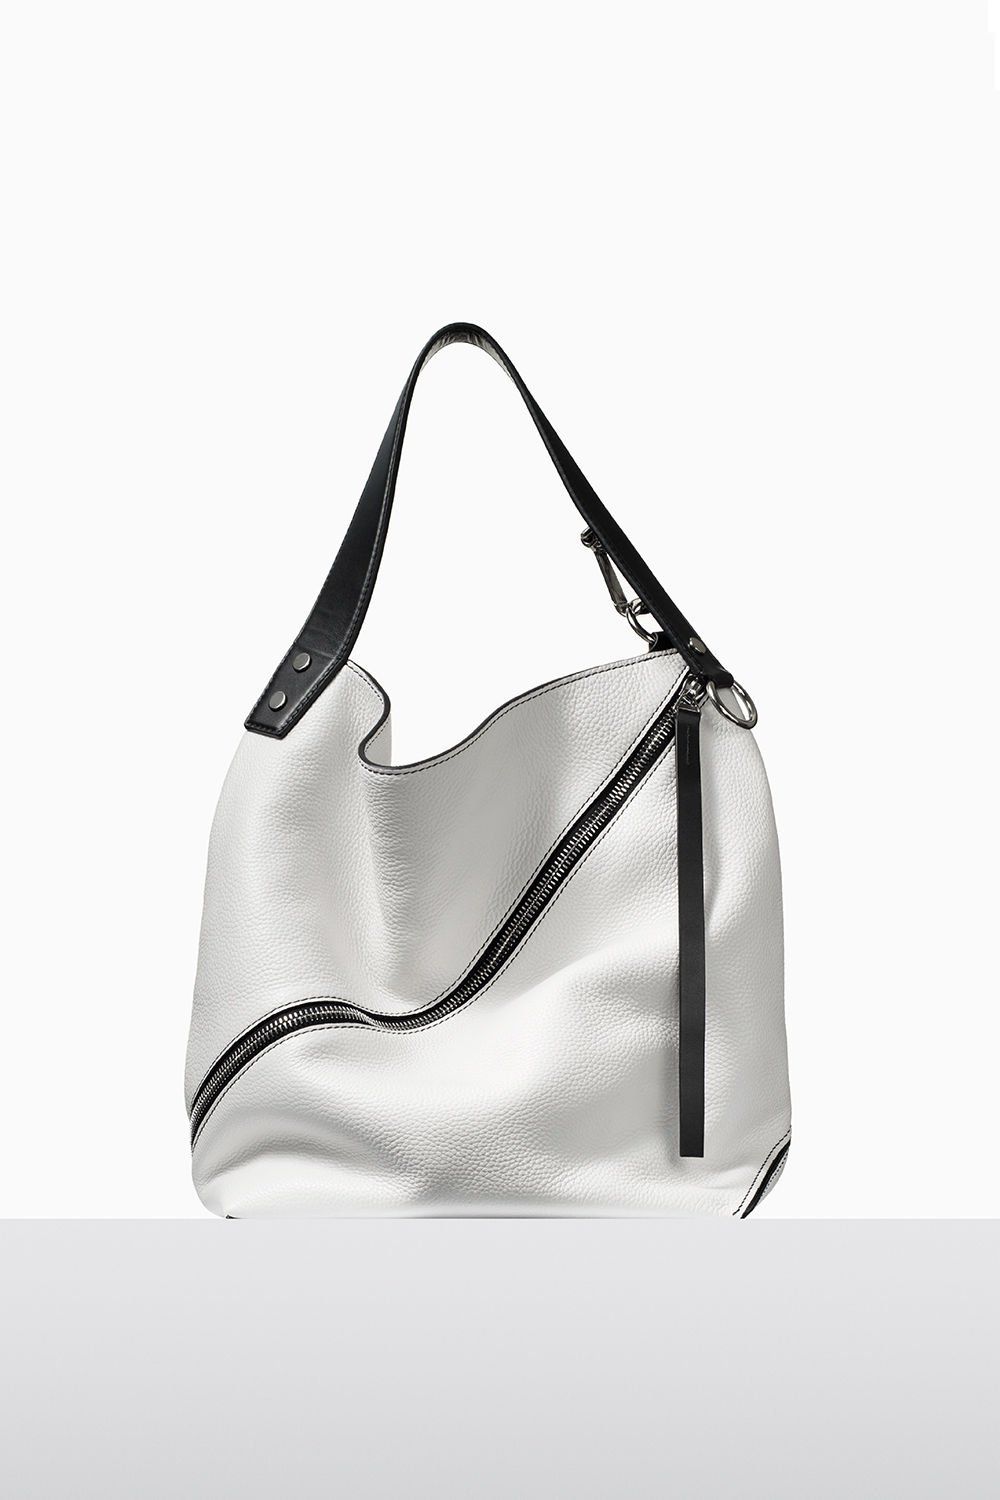 proenza schouler fall 2017 optic white textured grainy leather medium hobo